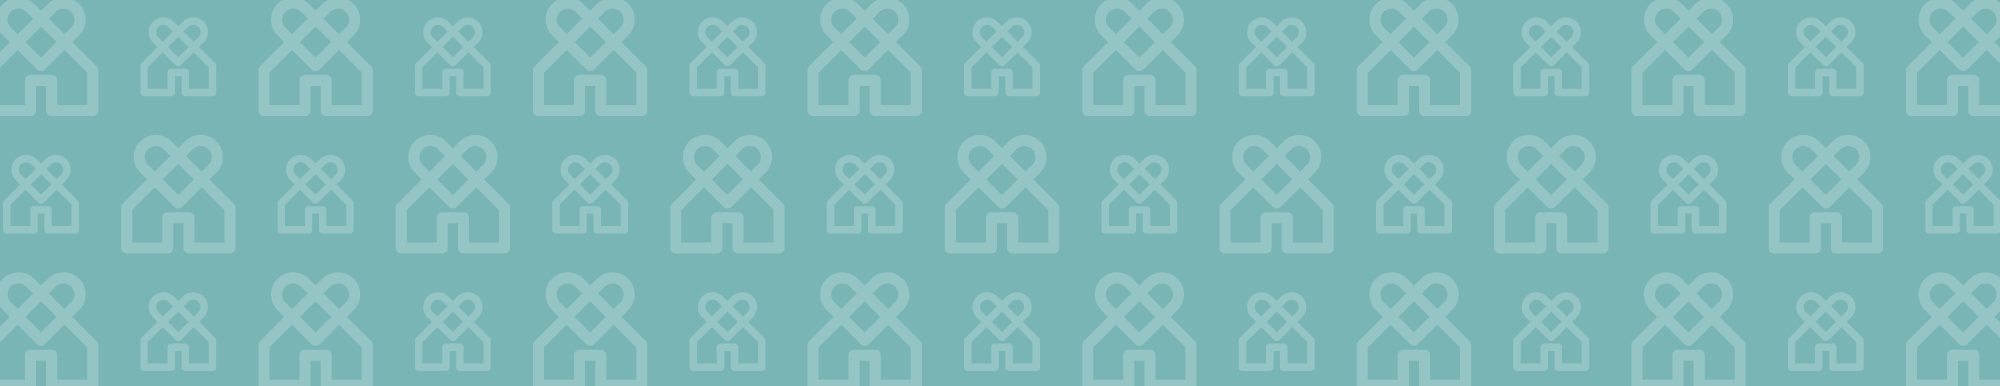 CARE-Patterns-Linear-Teal-Thin.png